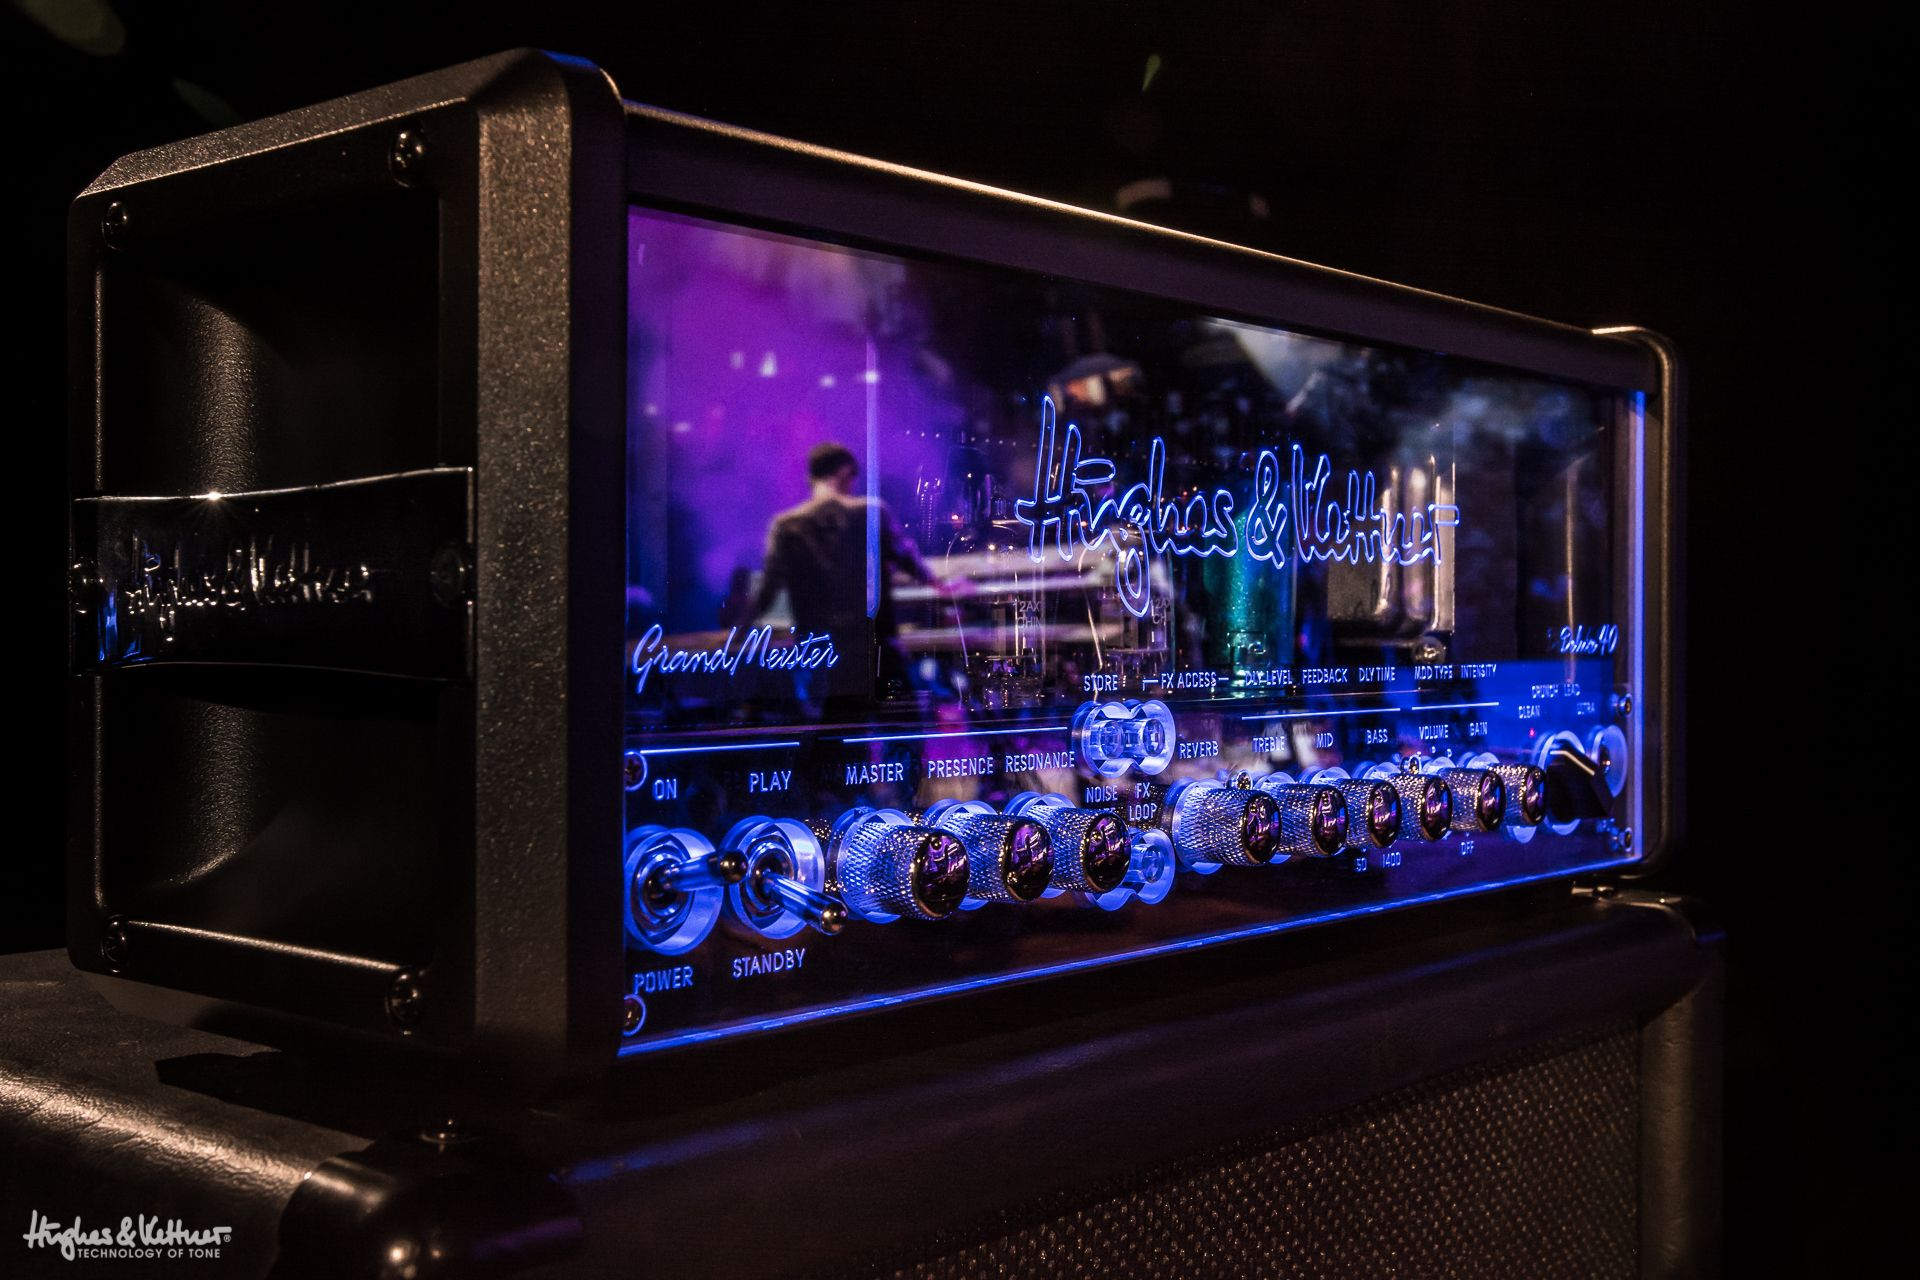 Grandmeister Deluxe 40 In All Its Glory Http Hughes And Kettner Com Products Grandmeister Grandmeister Deluxe 40 Hughesandkettne Guitar Amp Amp Guitar